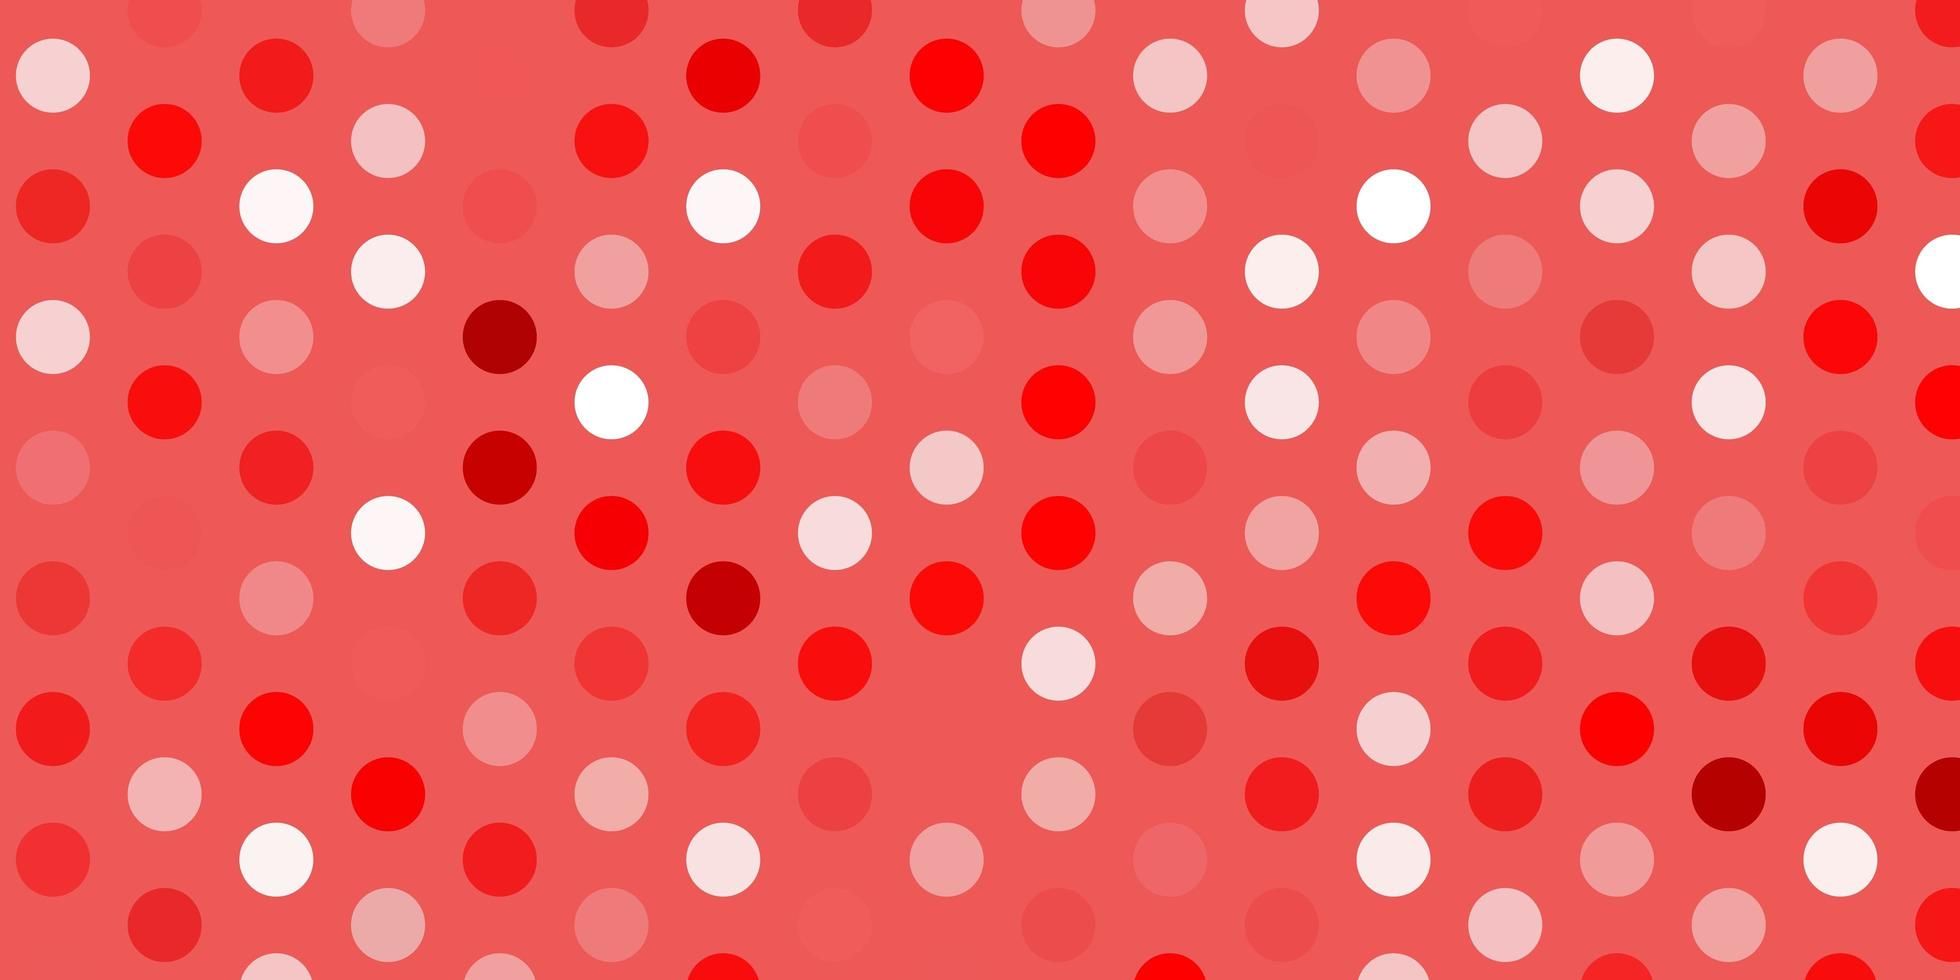 Light red vector background with bubbles.